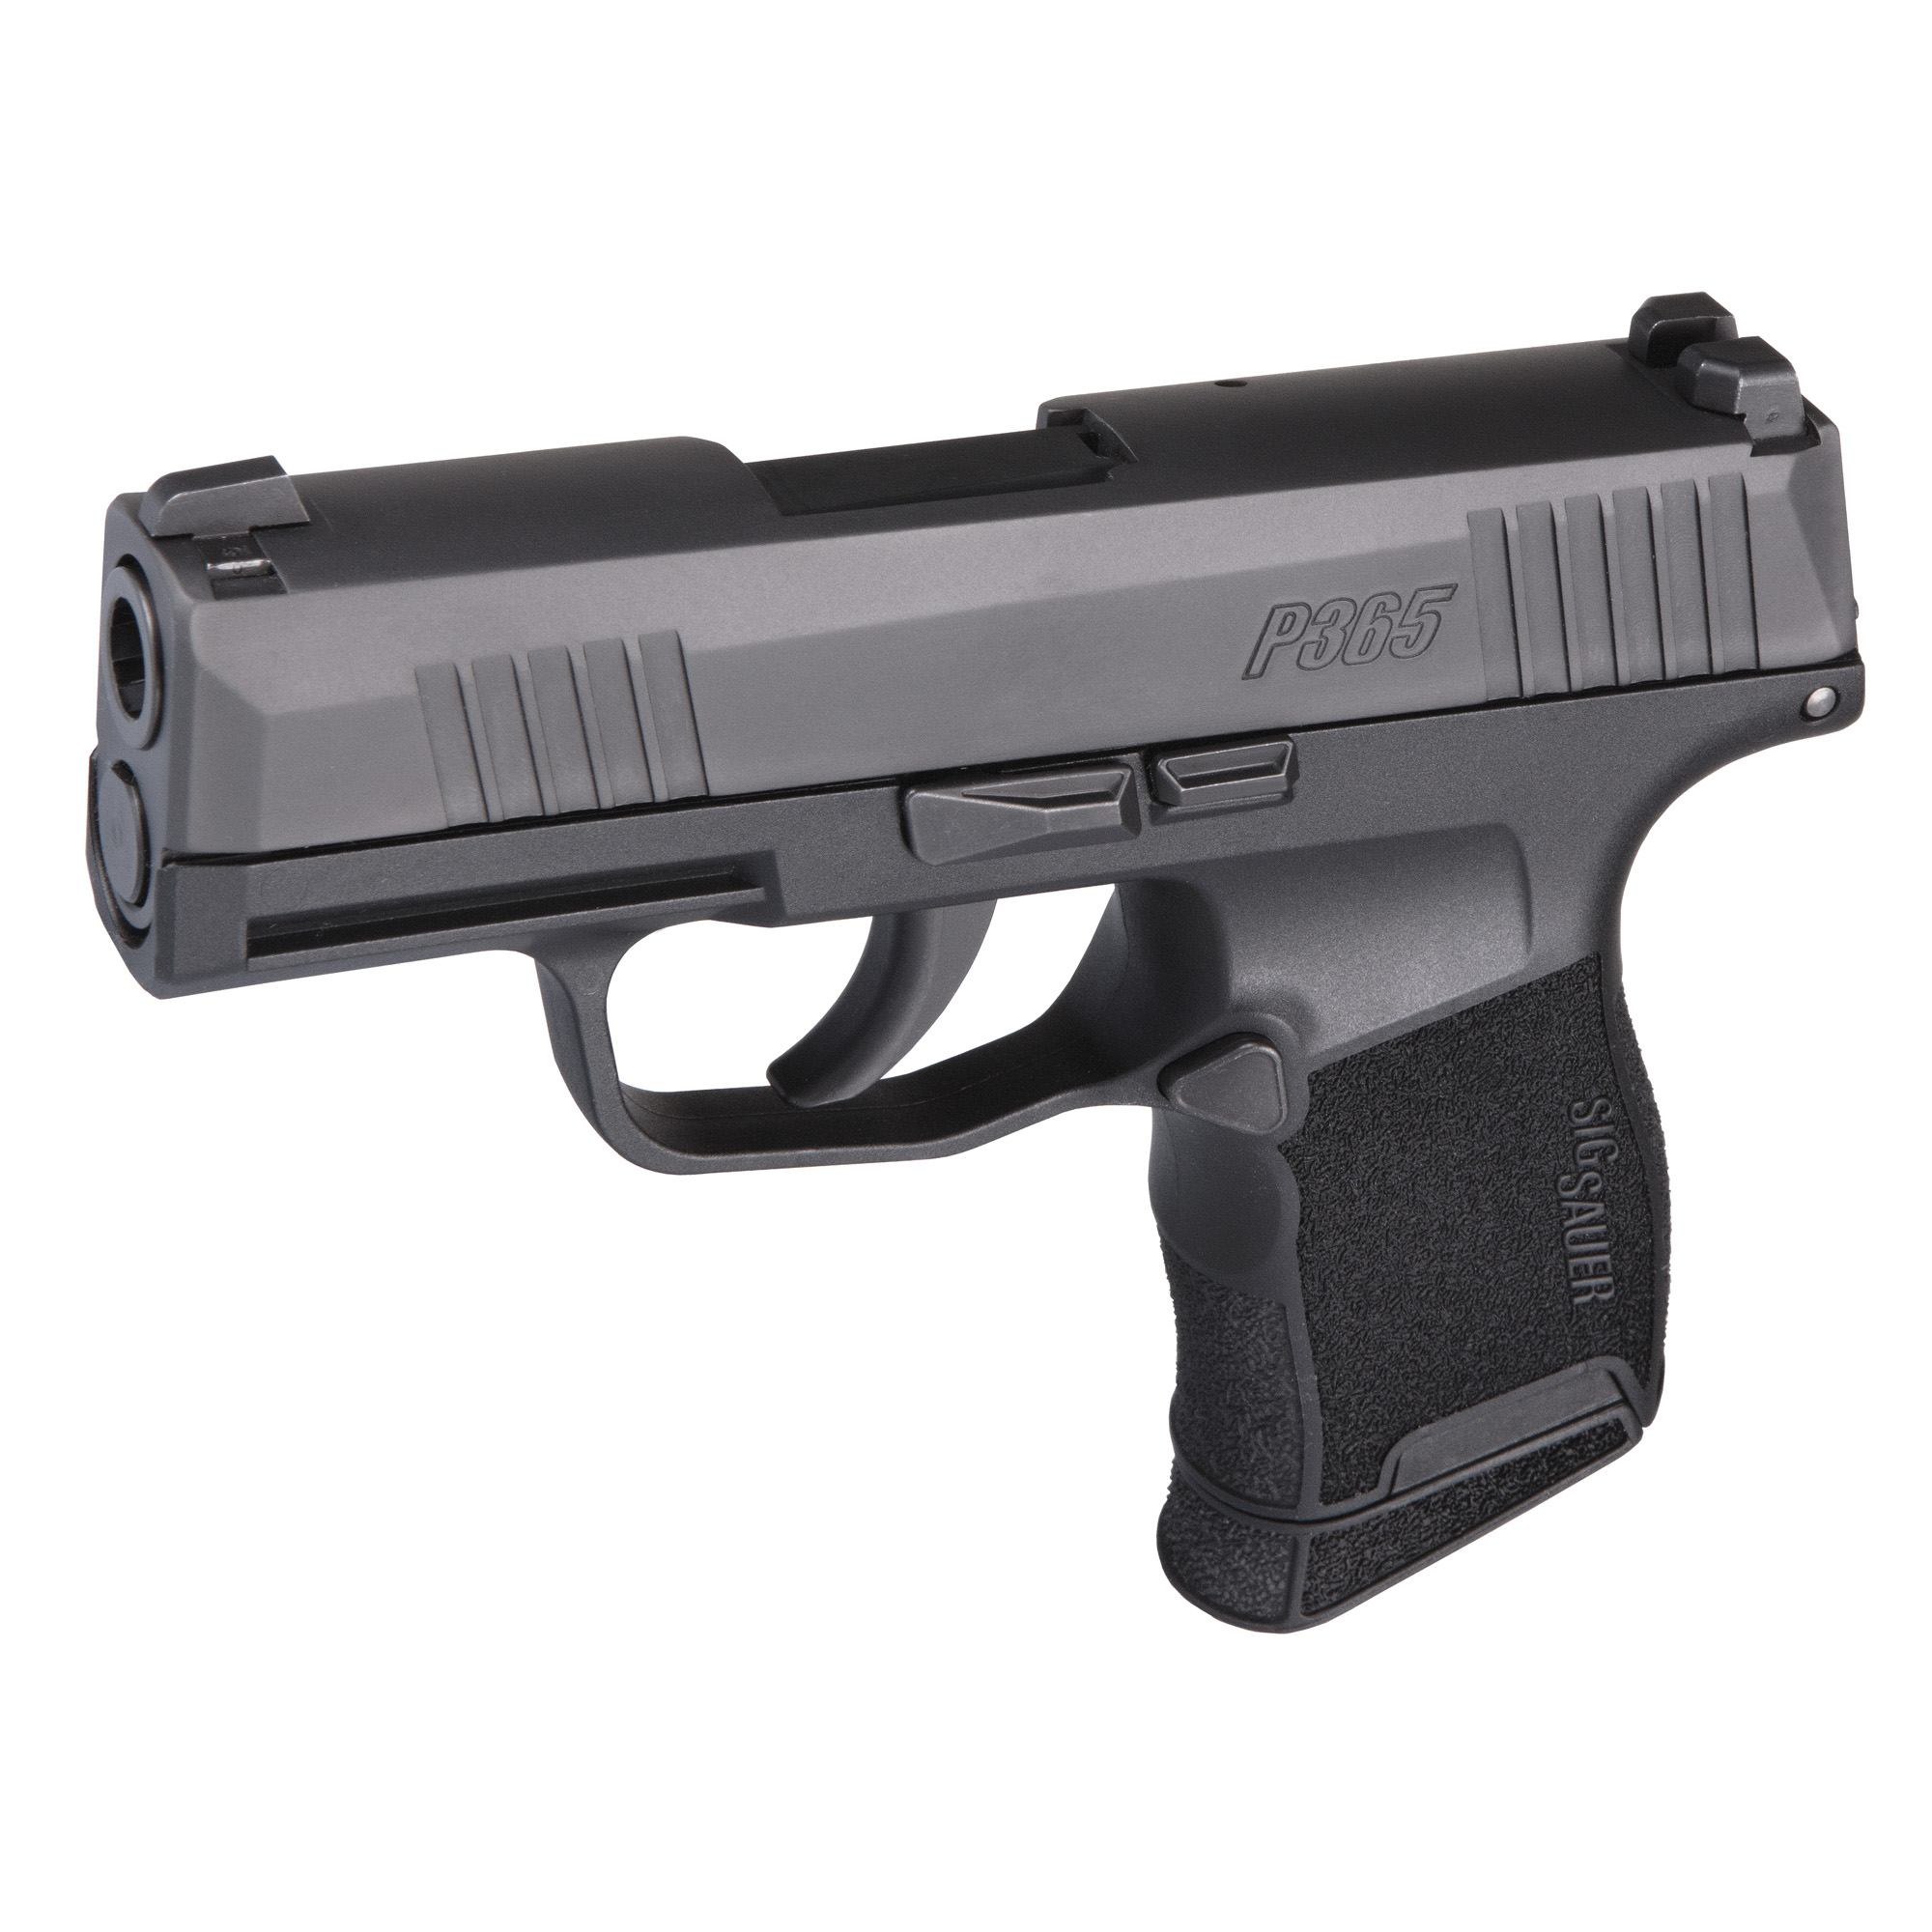 11 Best 9mm Concealed Carry Handguns For Sale – 2019 – USA